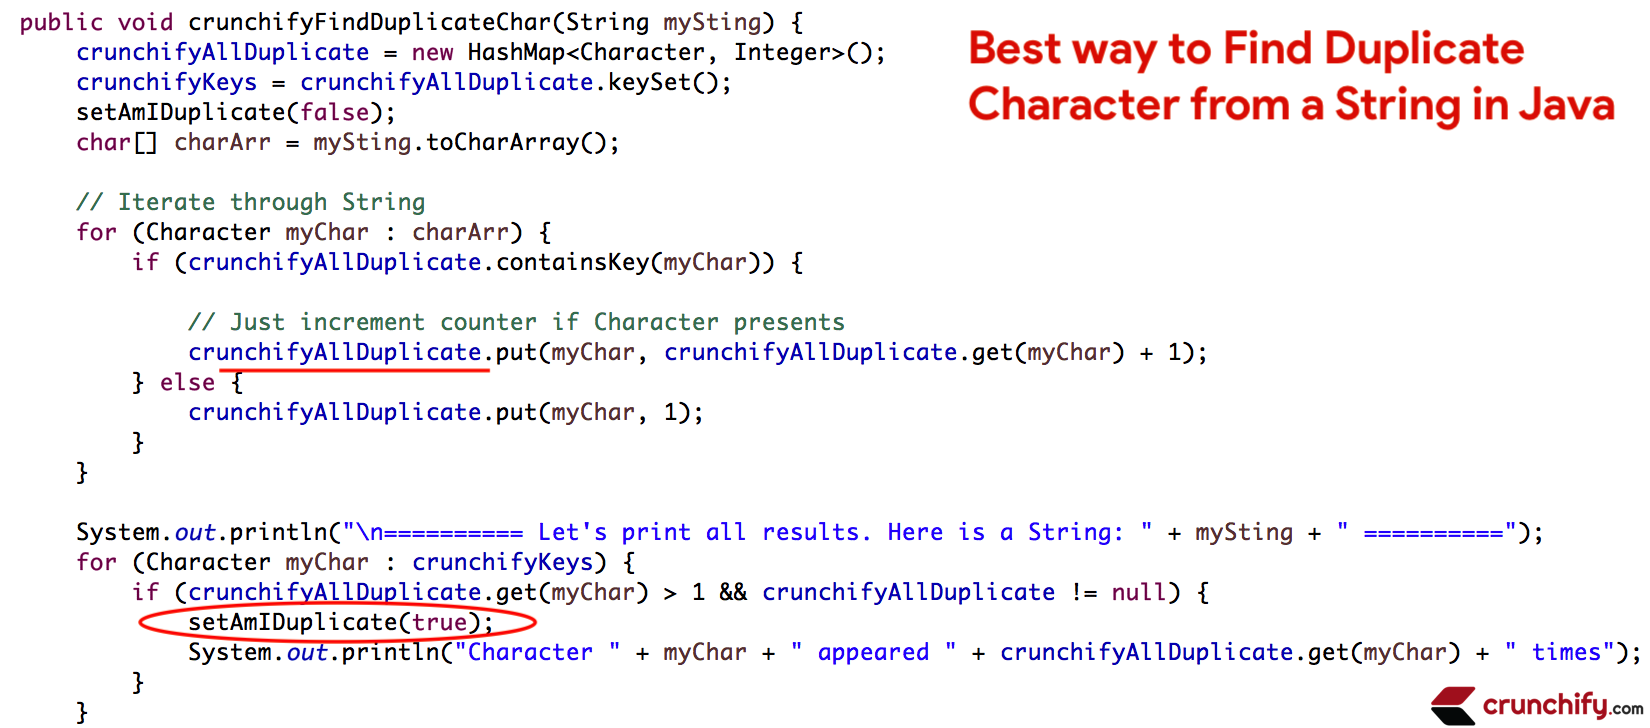 Best way to Find Duplicate Character from a String in Java